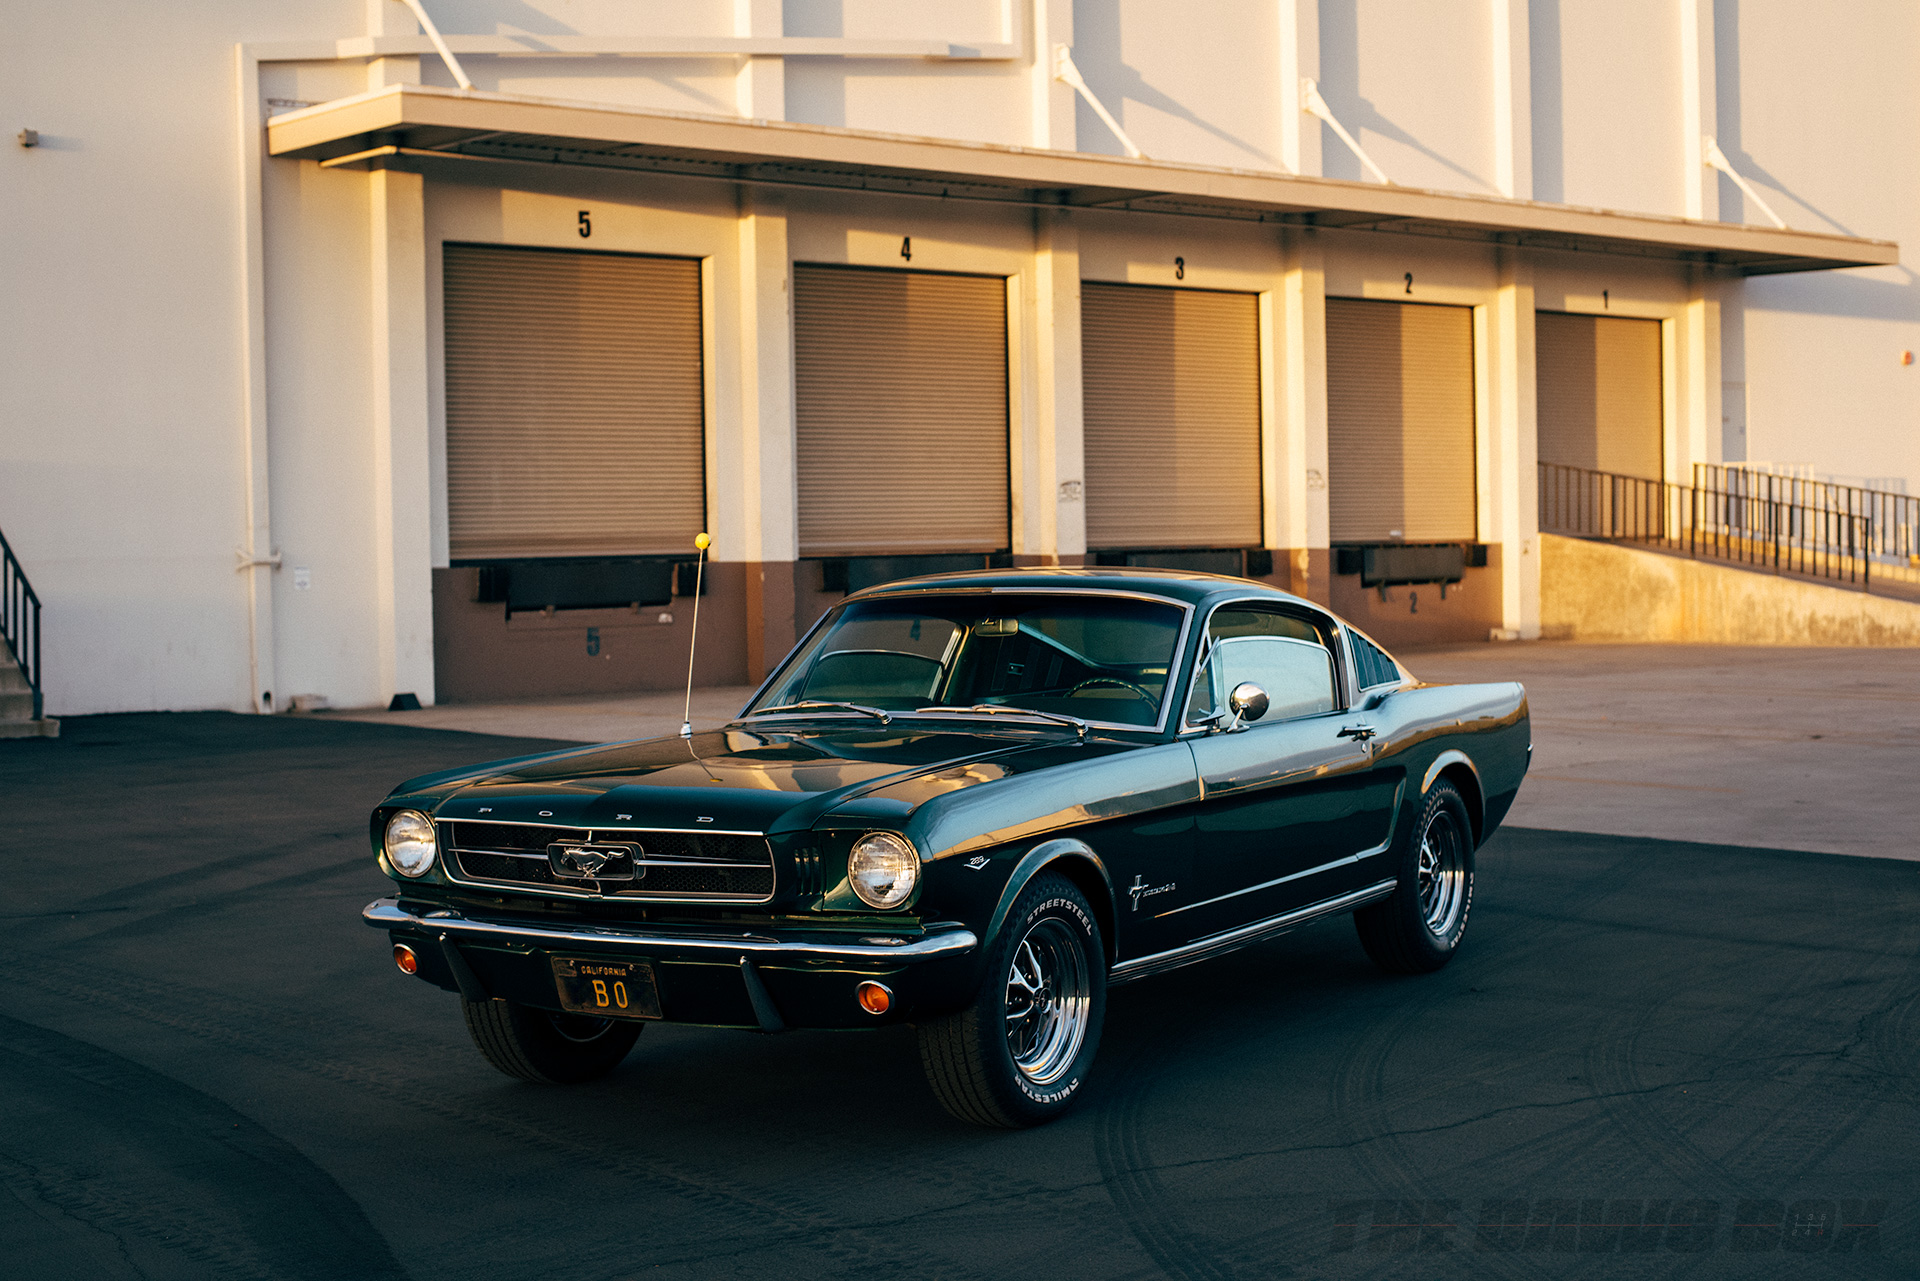 Front view of the Green 1965 Mustang Fastback 2+2 sitting in front of a shipping dock